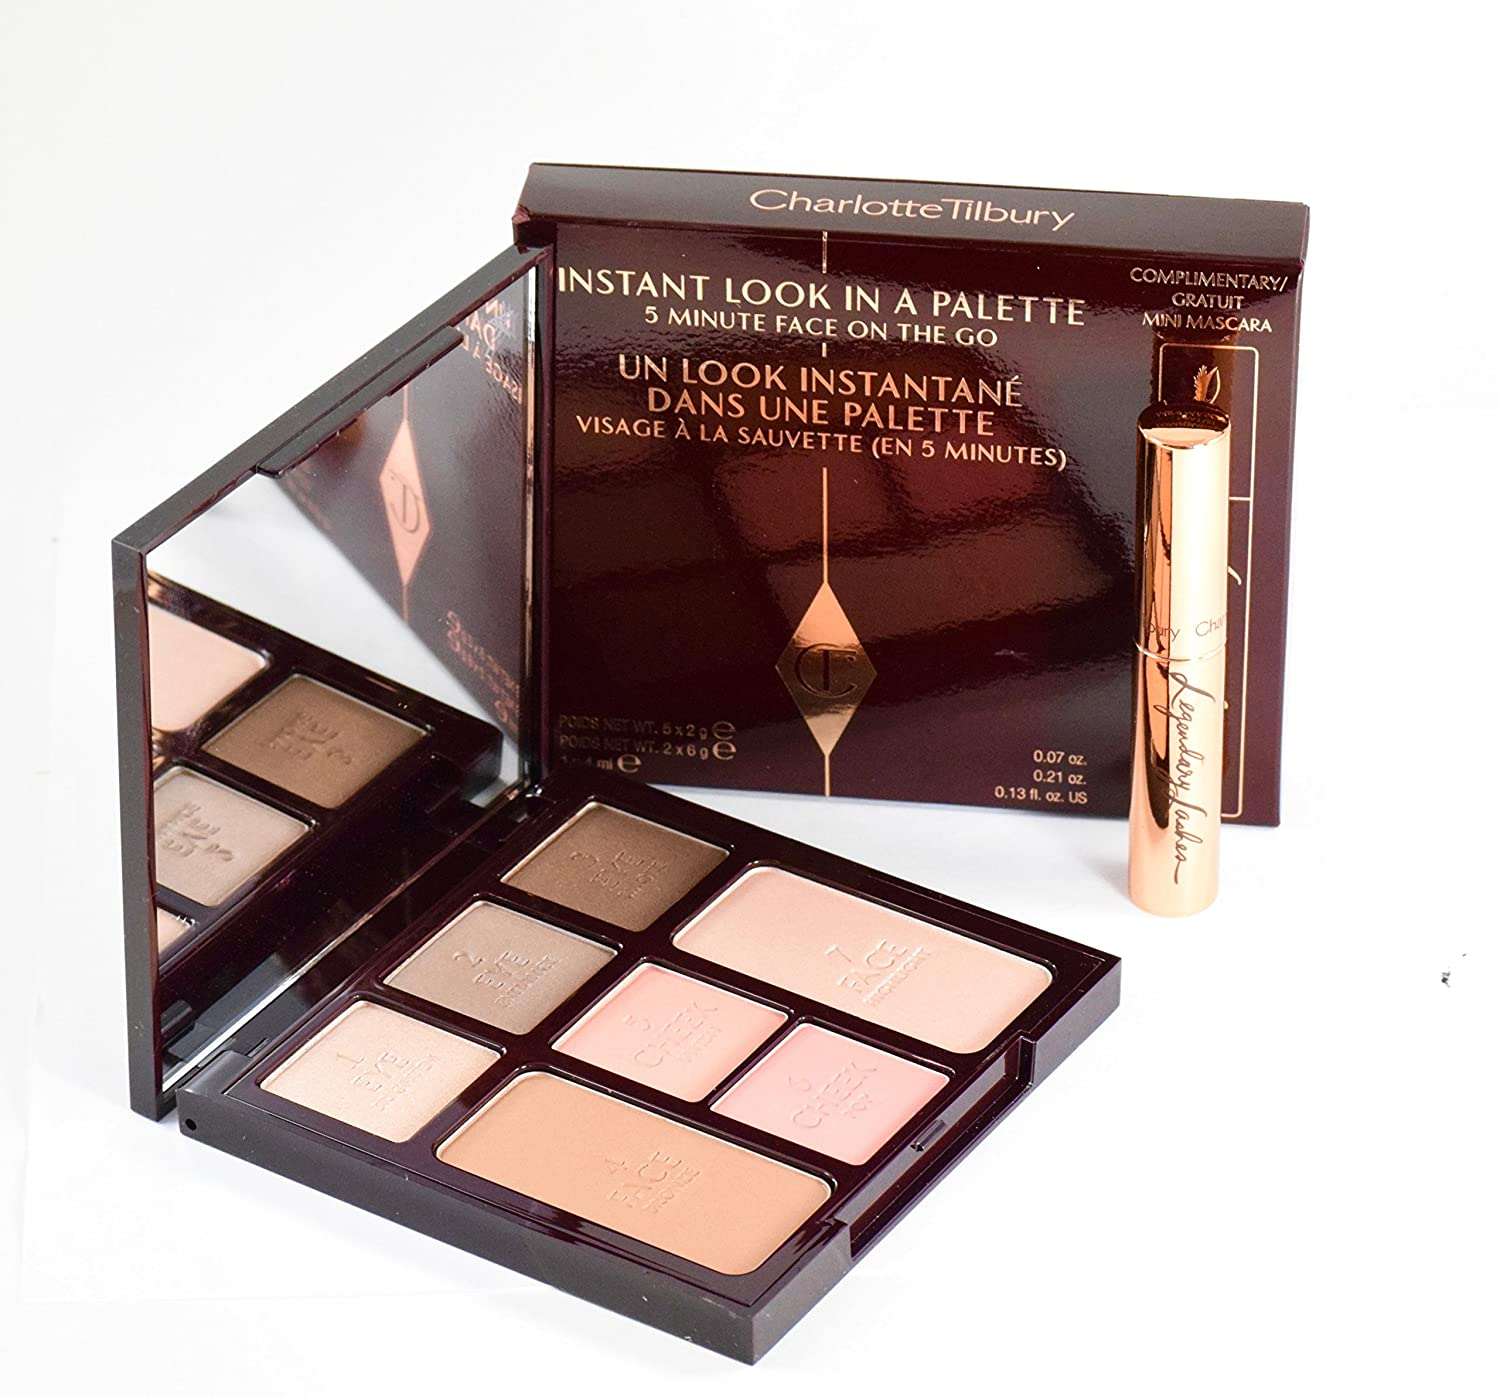 8c683ad319c3 Charlotte tilbury instant look in a palette face jpg 1500x1397 Charlotte  tilbury palette